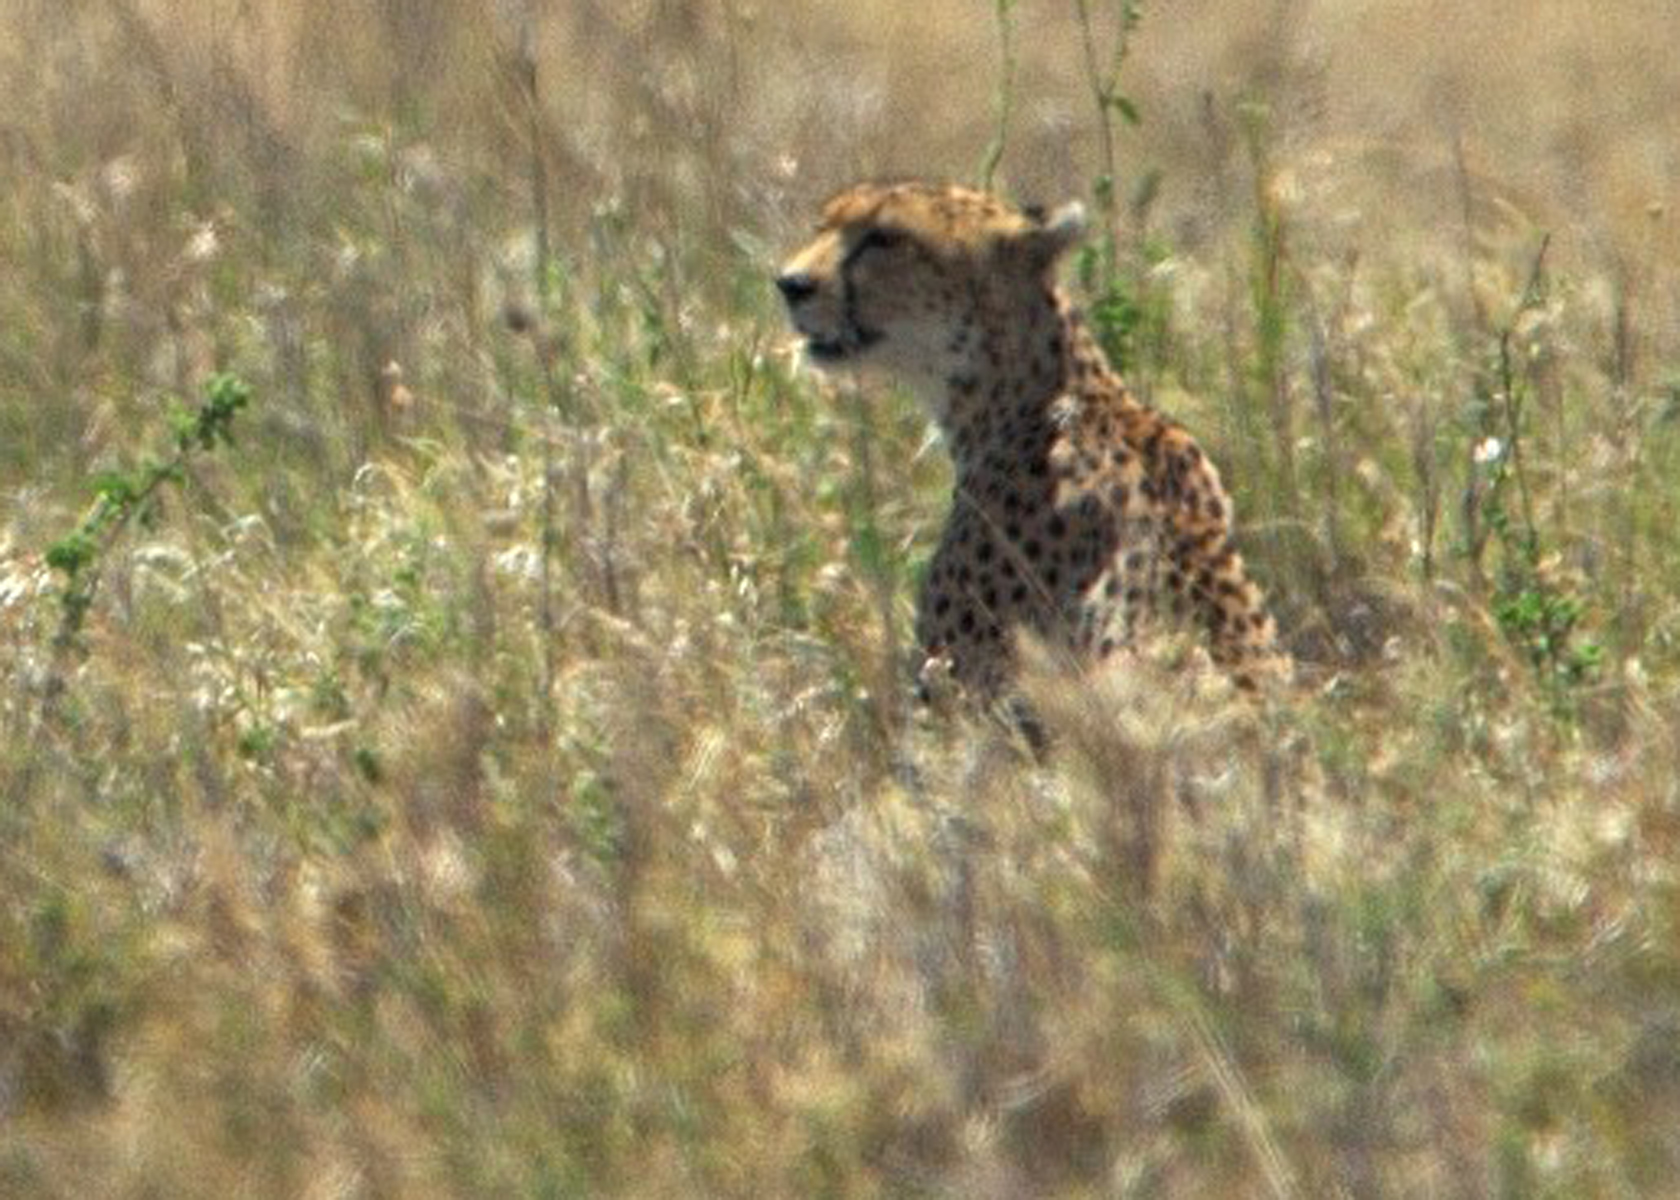 Serengeti cheetah surveys the tall grassland--photo by Jay Torborg